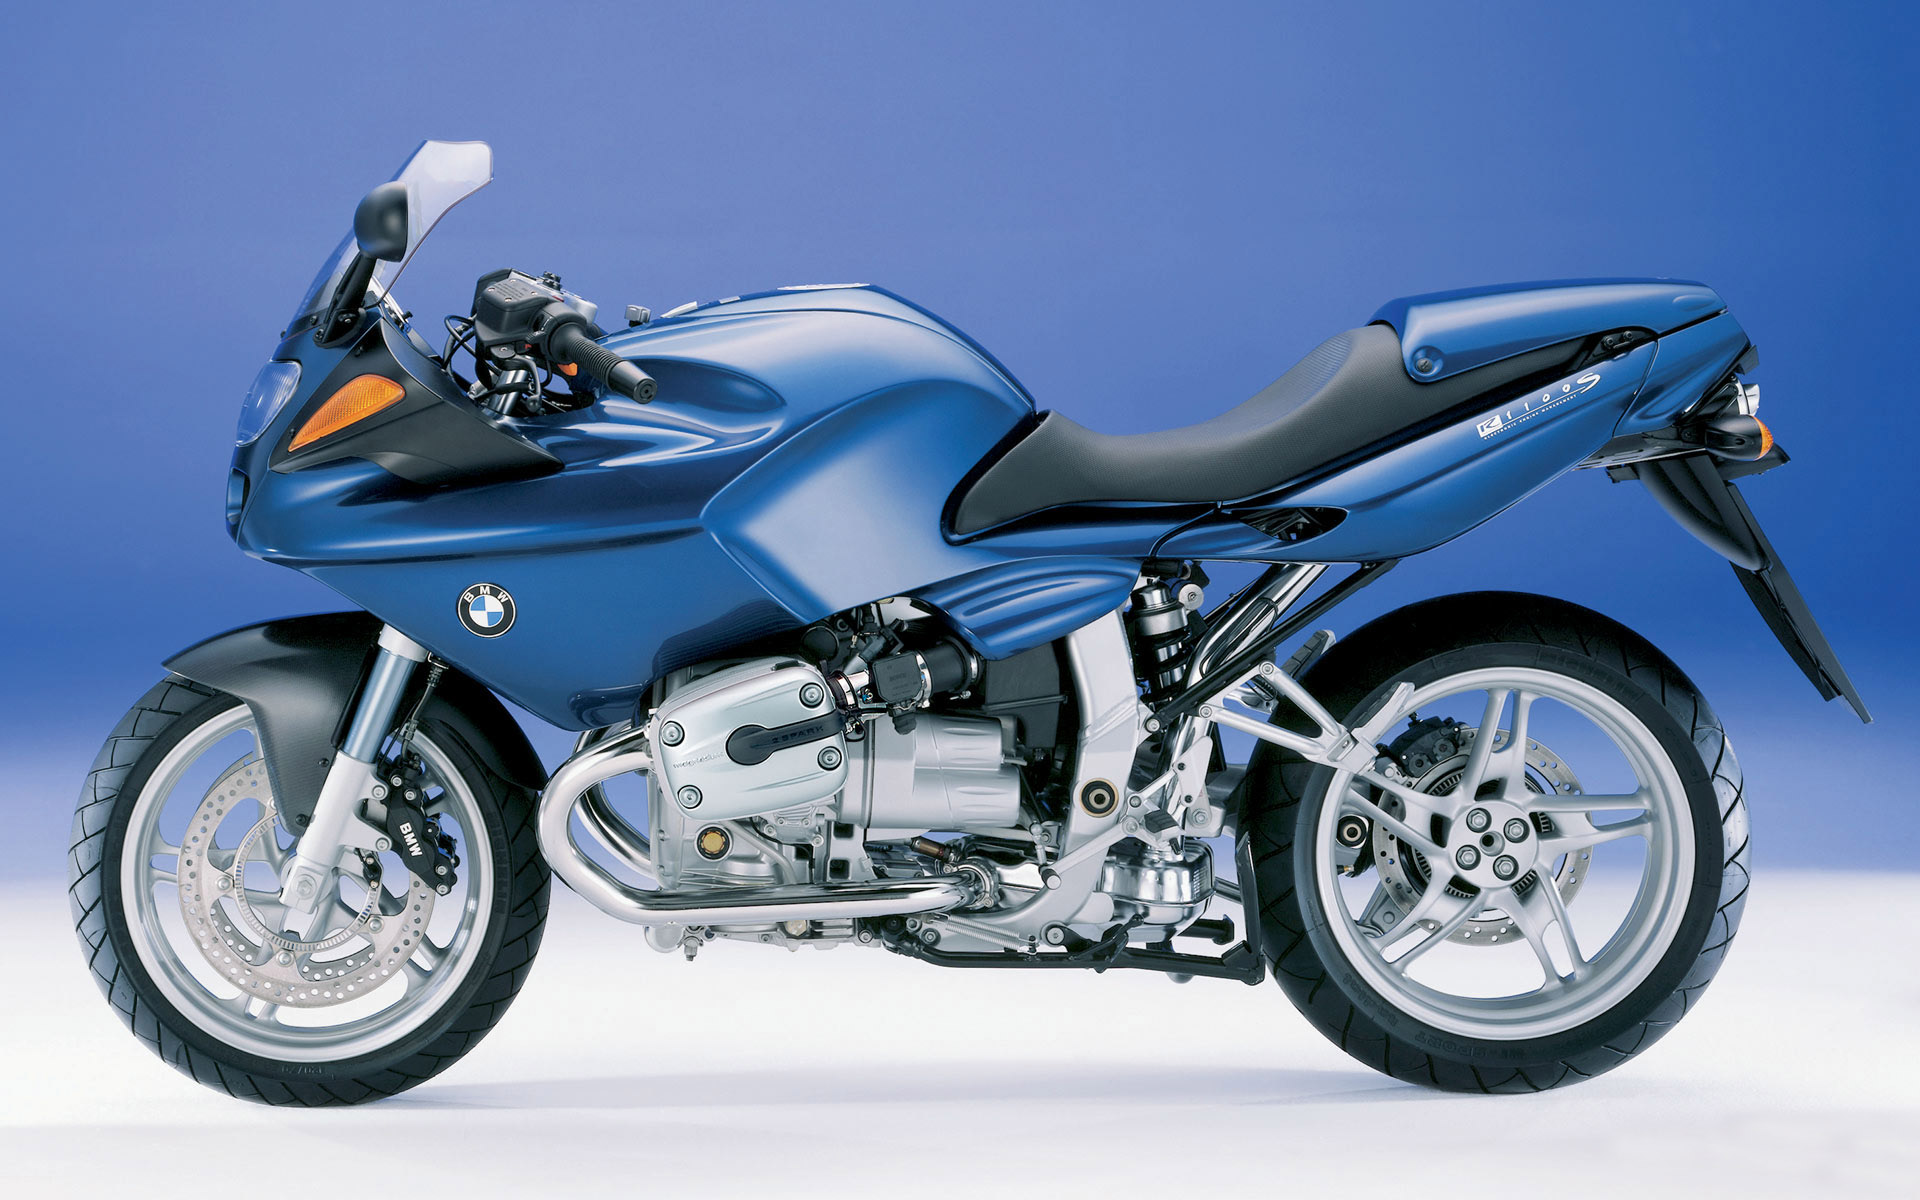 bmw-motorcycle-wide-hd-bmw-wallpapers-images-desktop-download-full-free